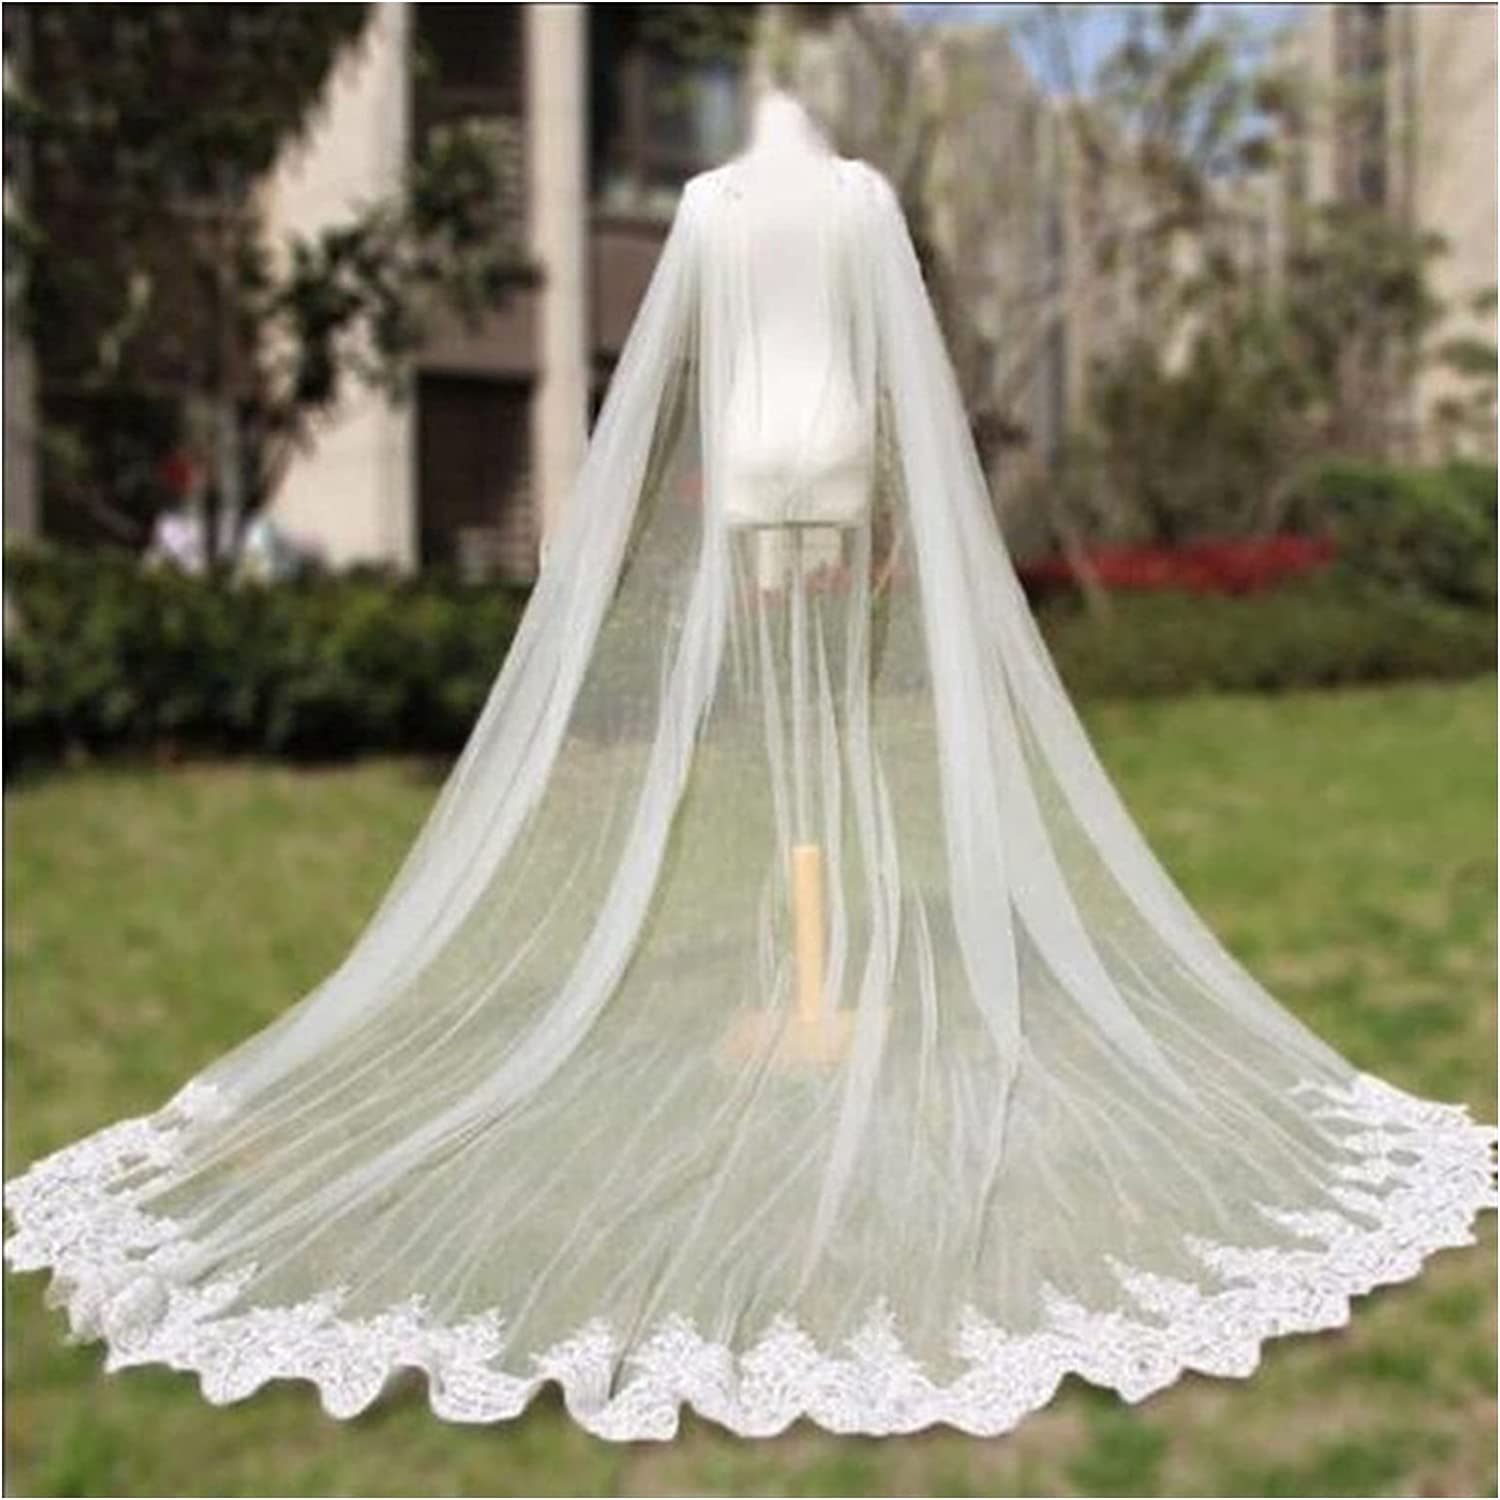 SIFDNRGNFN Max 47% OFF List price Tulle Cathedral Length Wedding Bridal Veil Cape Cloak